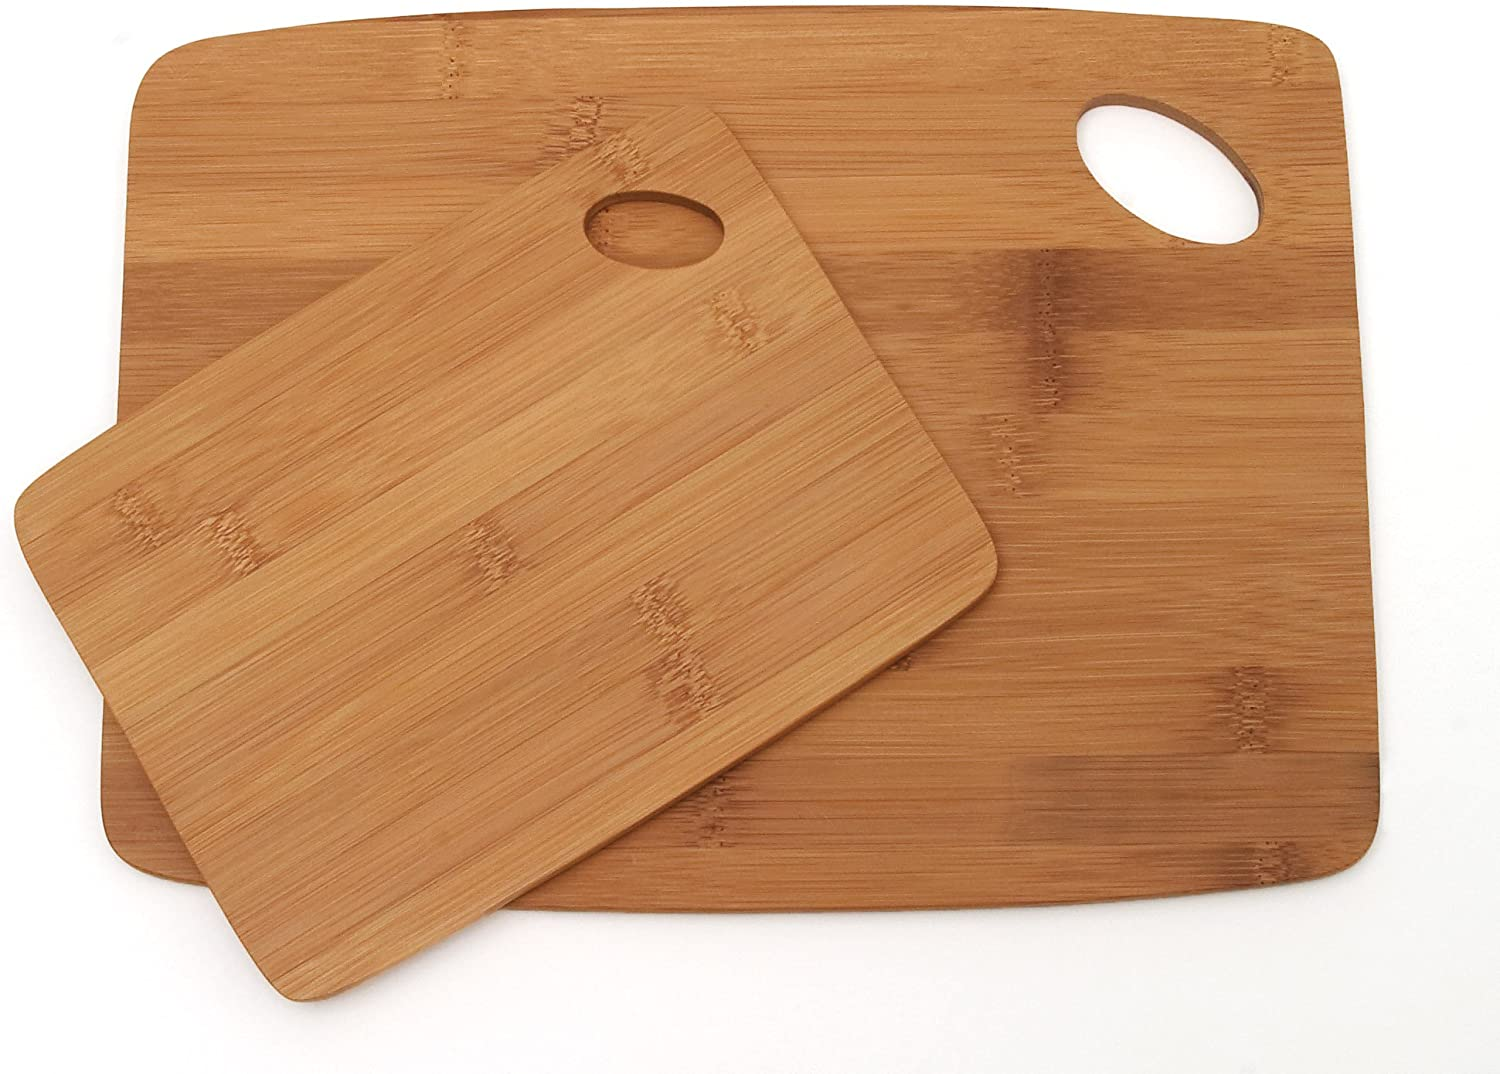 """Lipper International 859 Bamboo Wood Thin Kitchen Cutting Boards with Oval Hole in Corner, Set of 2 Boards, 6"""" x 8"""" and 9"""" x 12"""""""